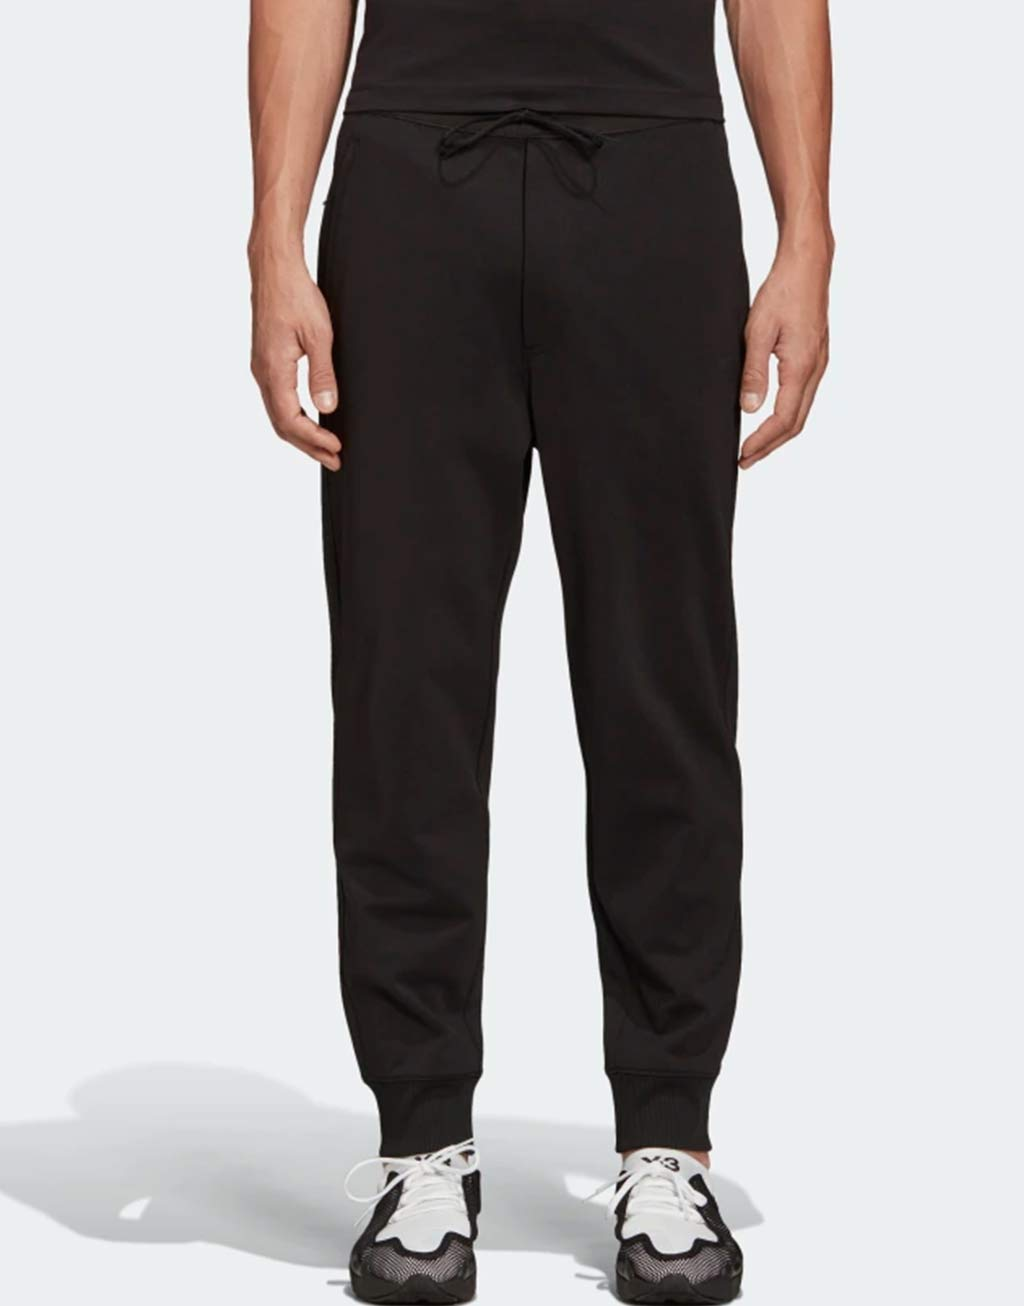 best techwear pants 2